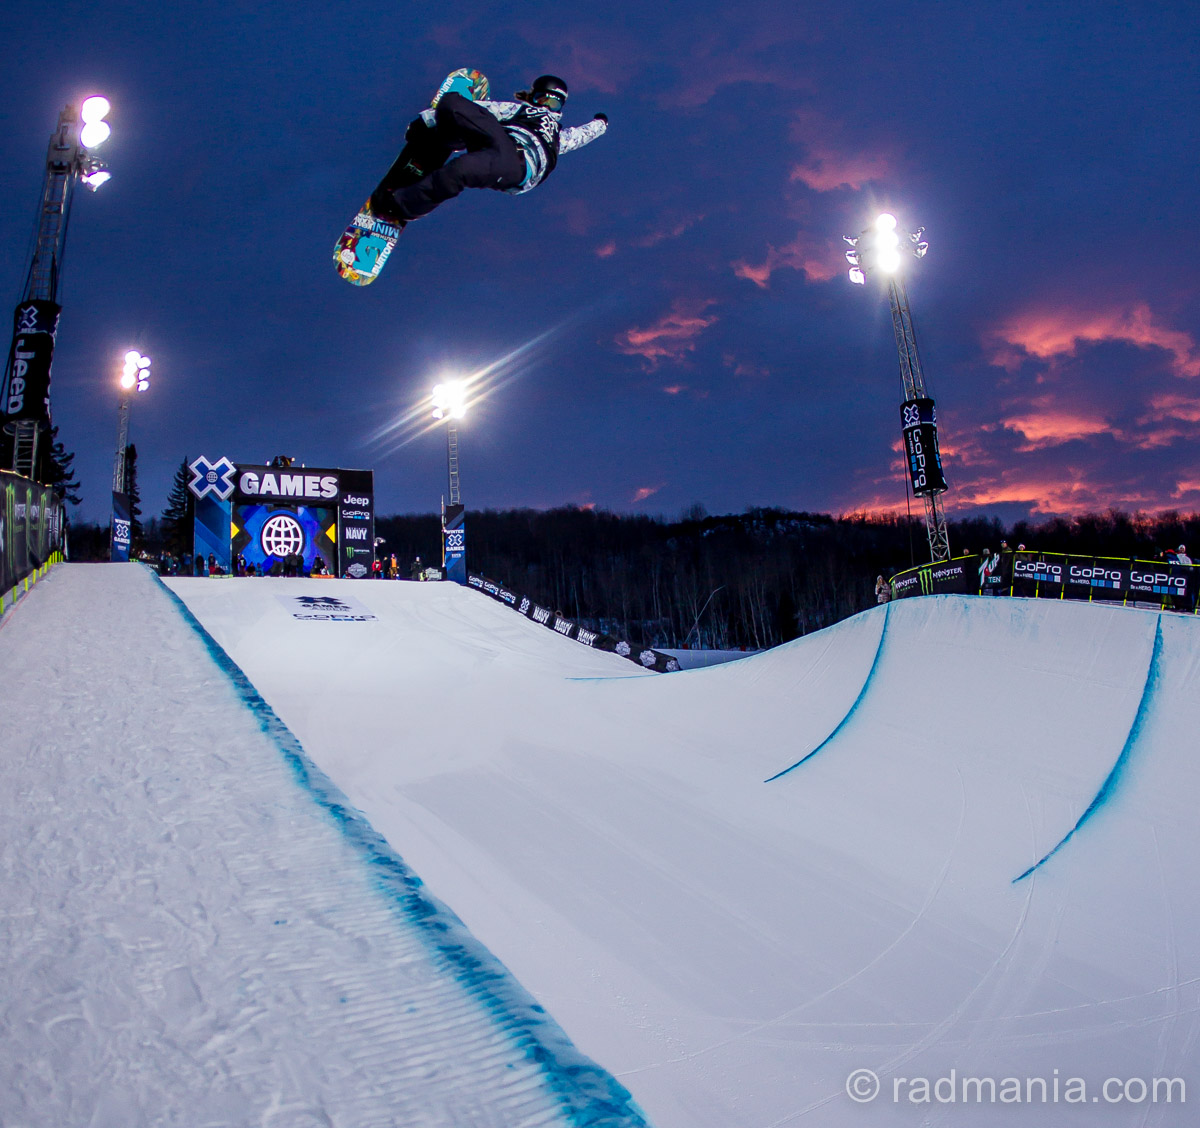 X Games 2015 Superpipe And Big Air Photo Gallery